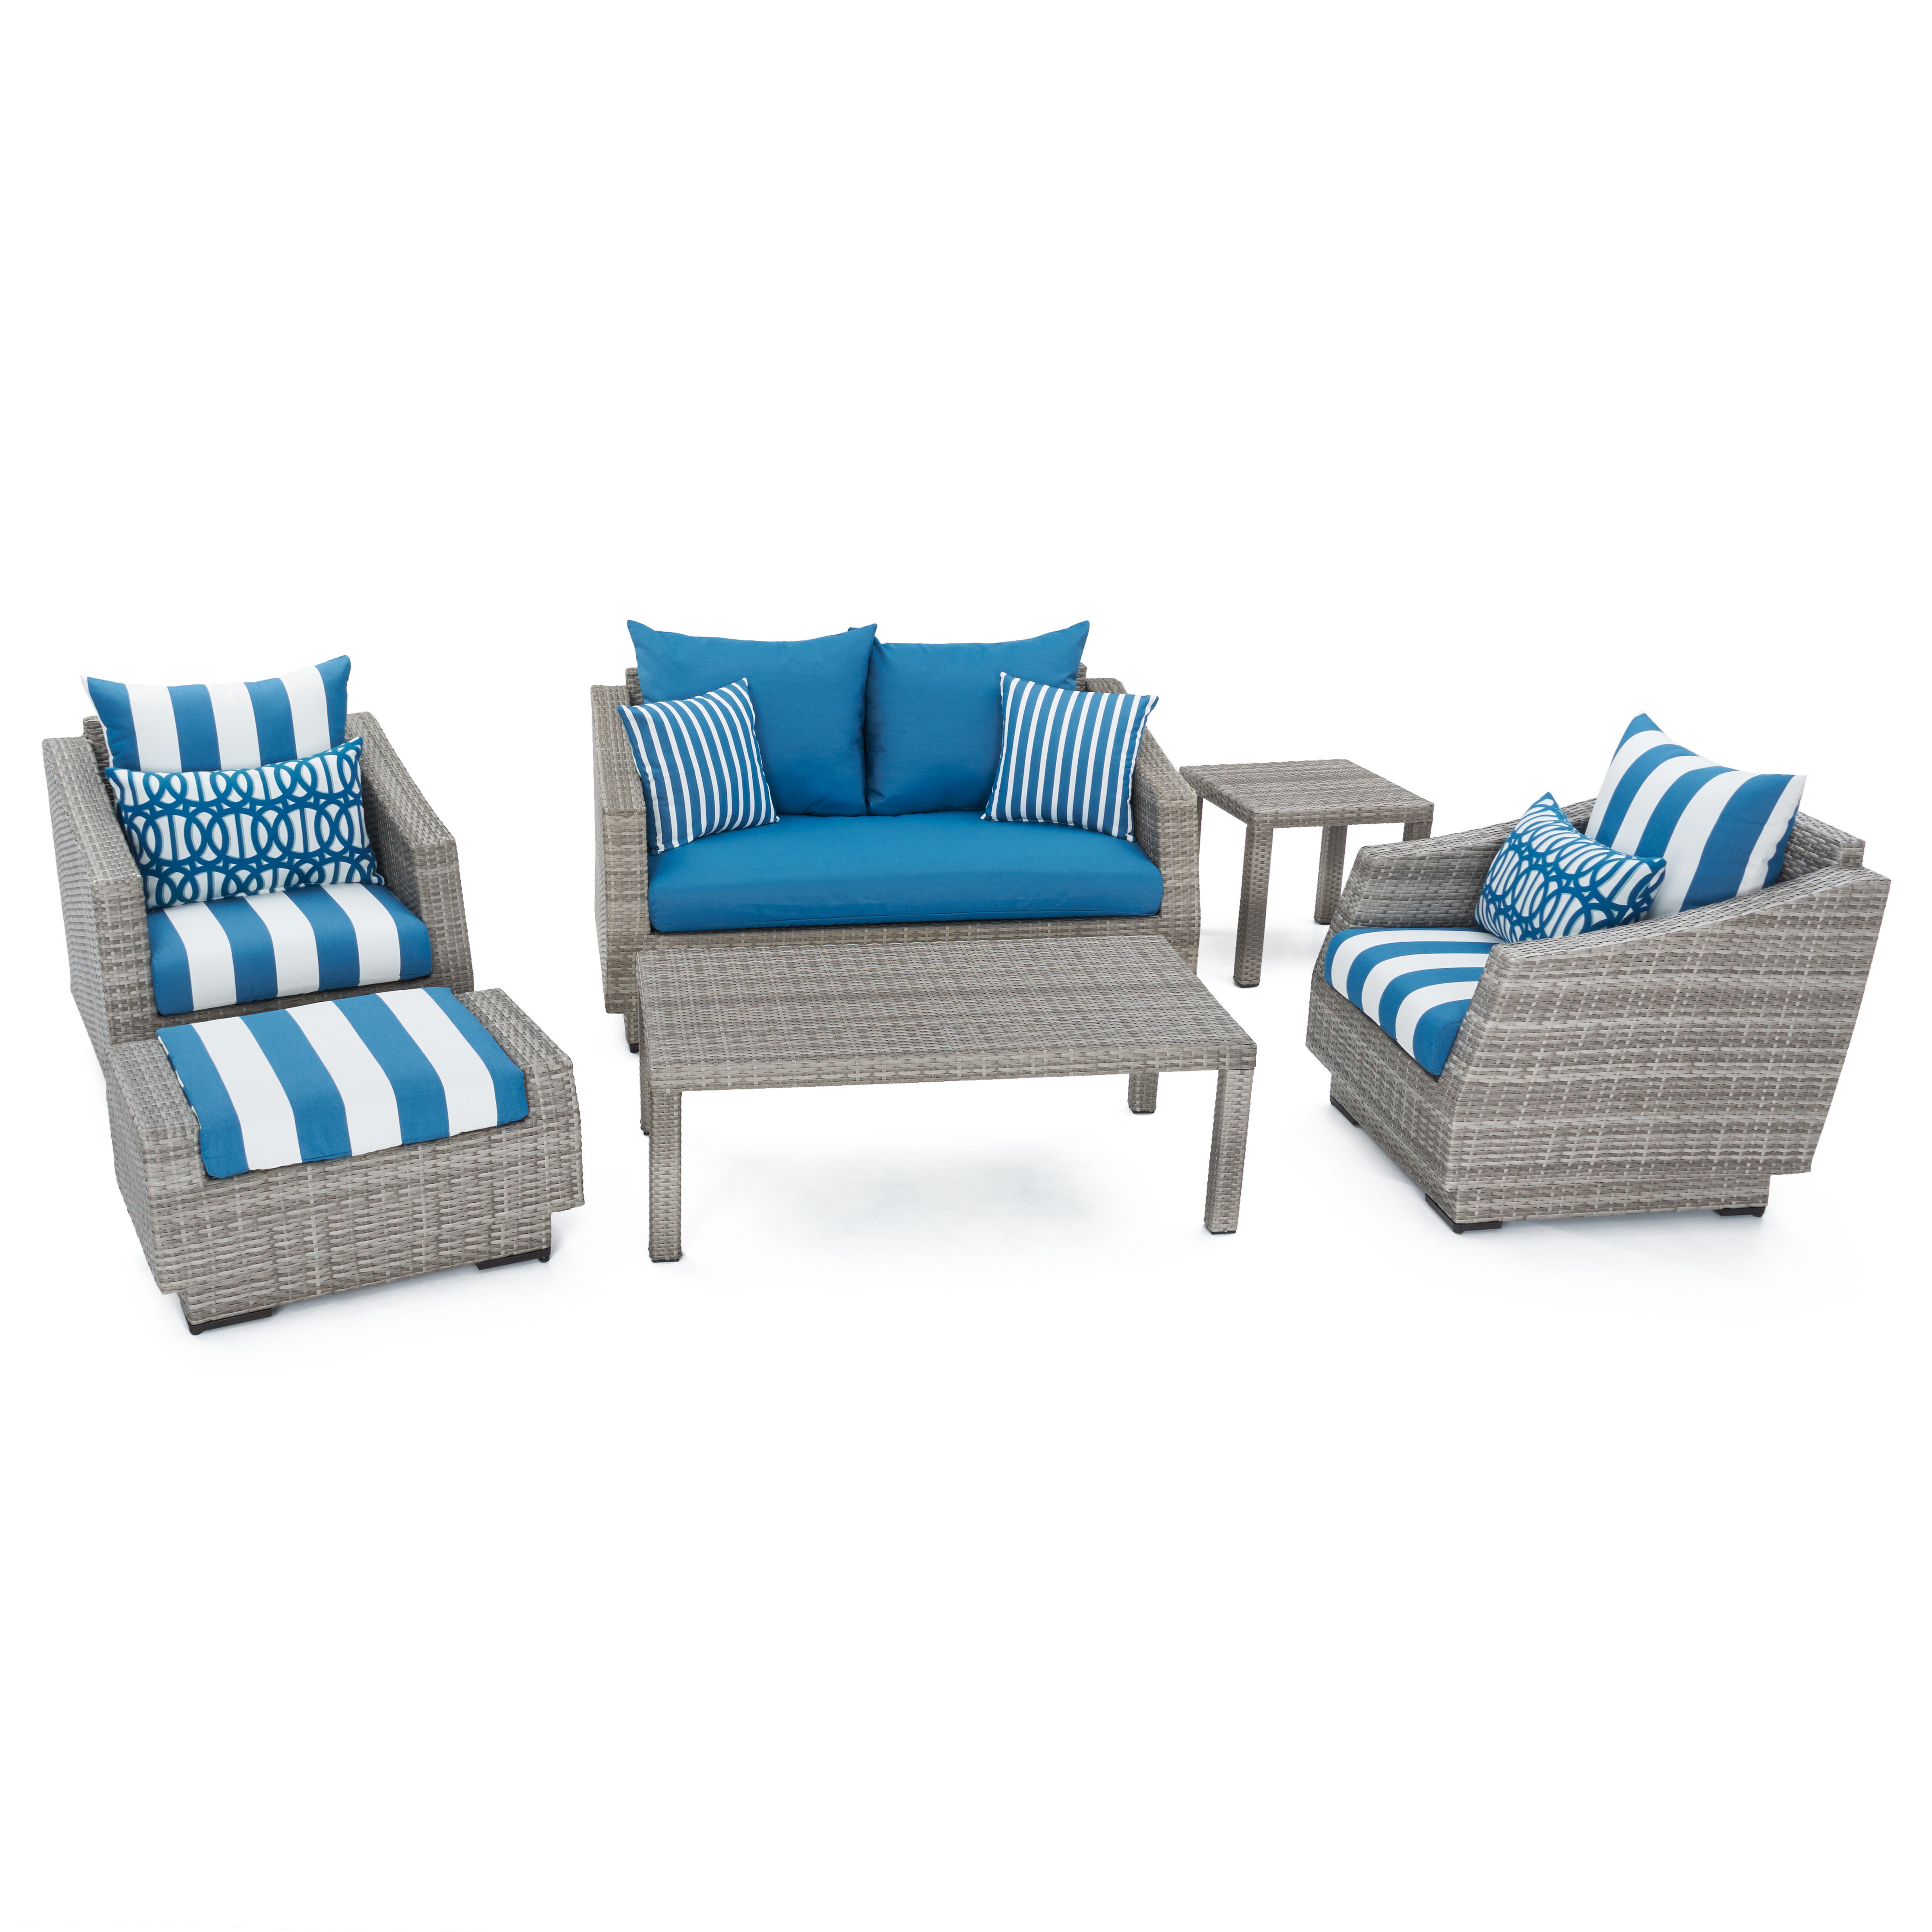 Castelli Patio Sofas With Sunbrella Cushions Pertaining To Well Known Castelli 6 Piece Rattan Sunbrella Sofa Set With Cushions (View 7 of 20)